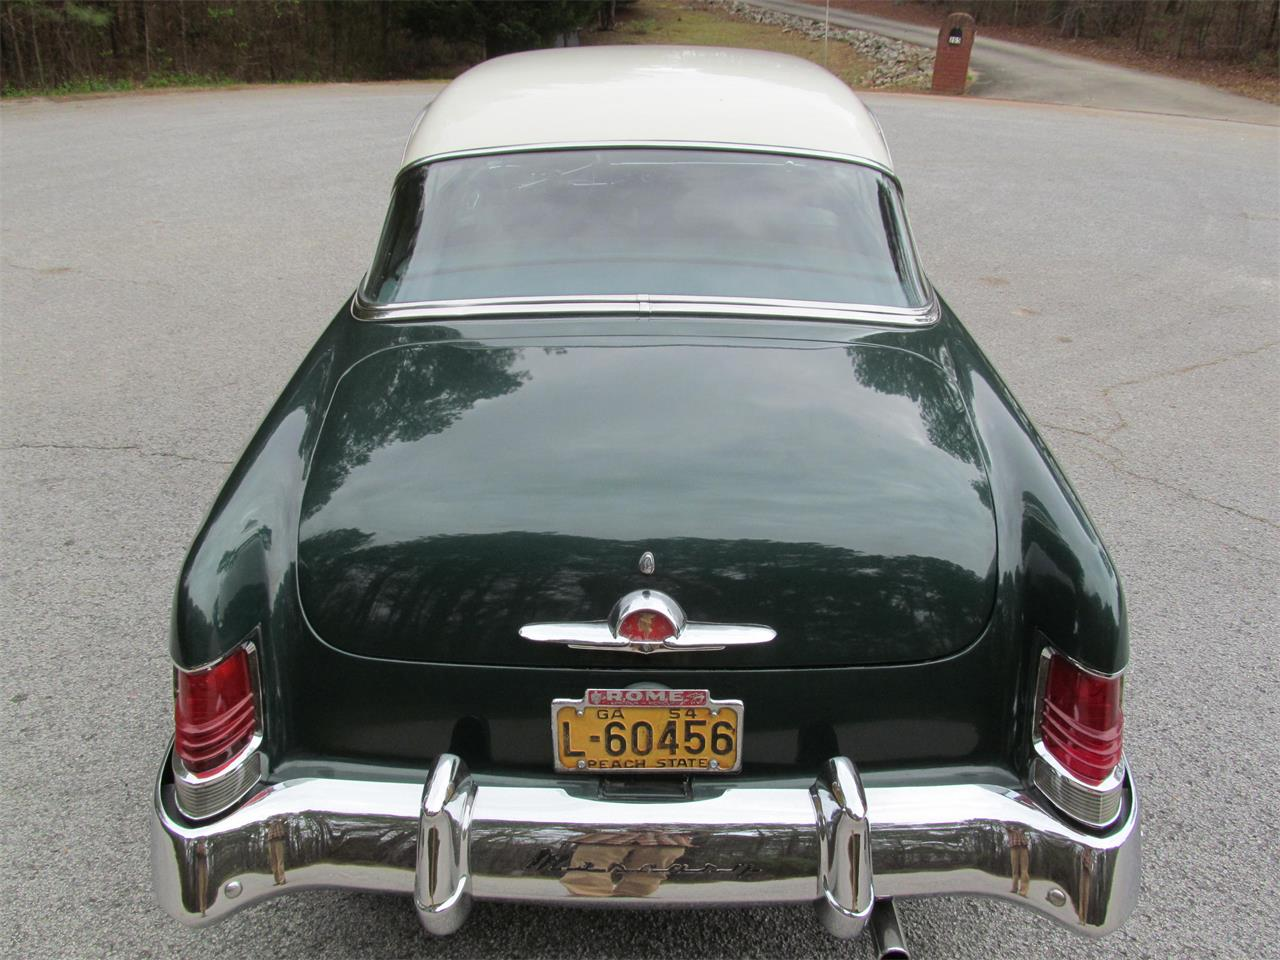 Large Picture of 1954 Mercury Monterey located in Fayetteville Georgia - $24,900.00 Offered by Peachtree Classic Cars - N46J